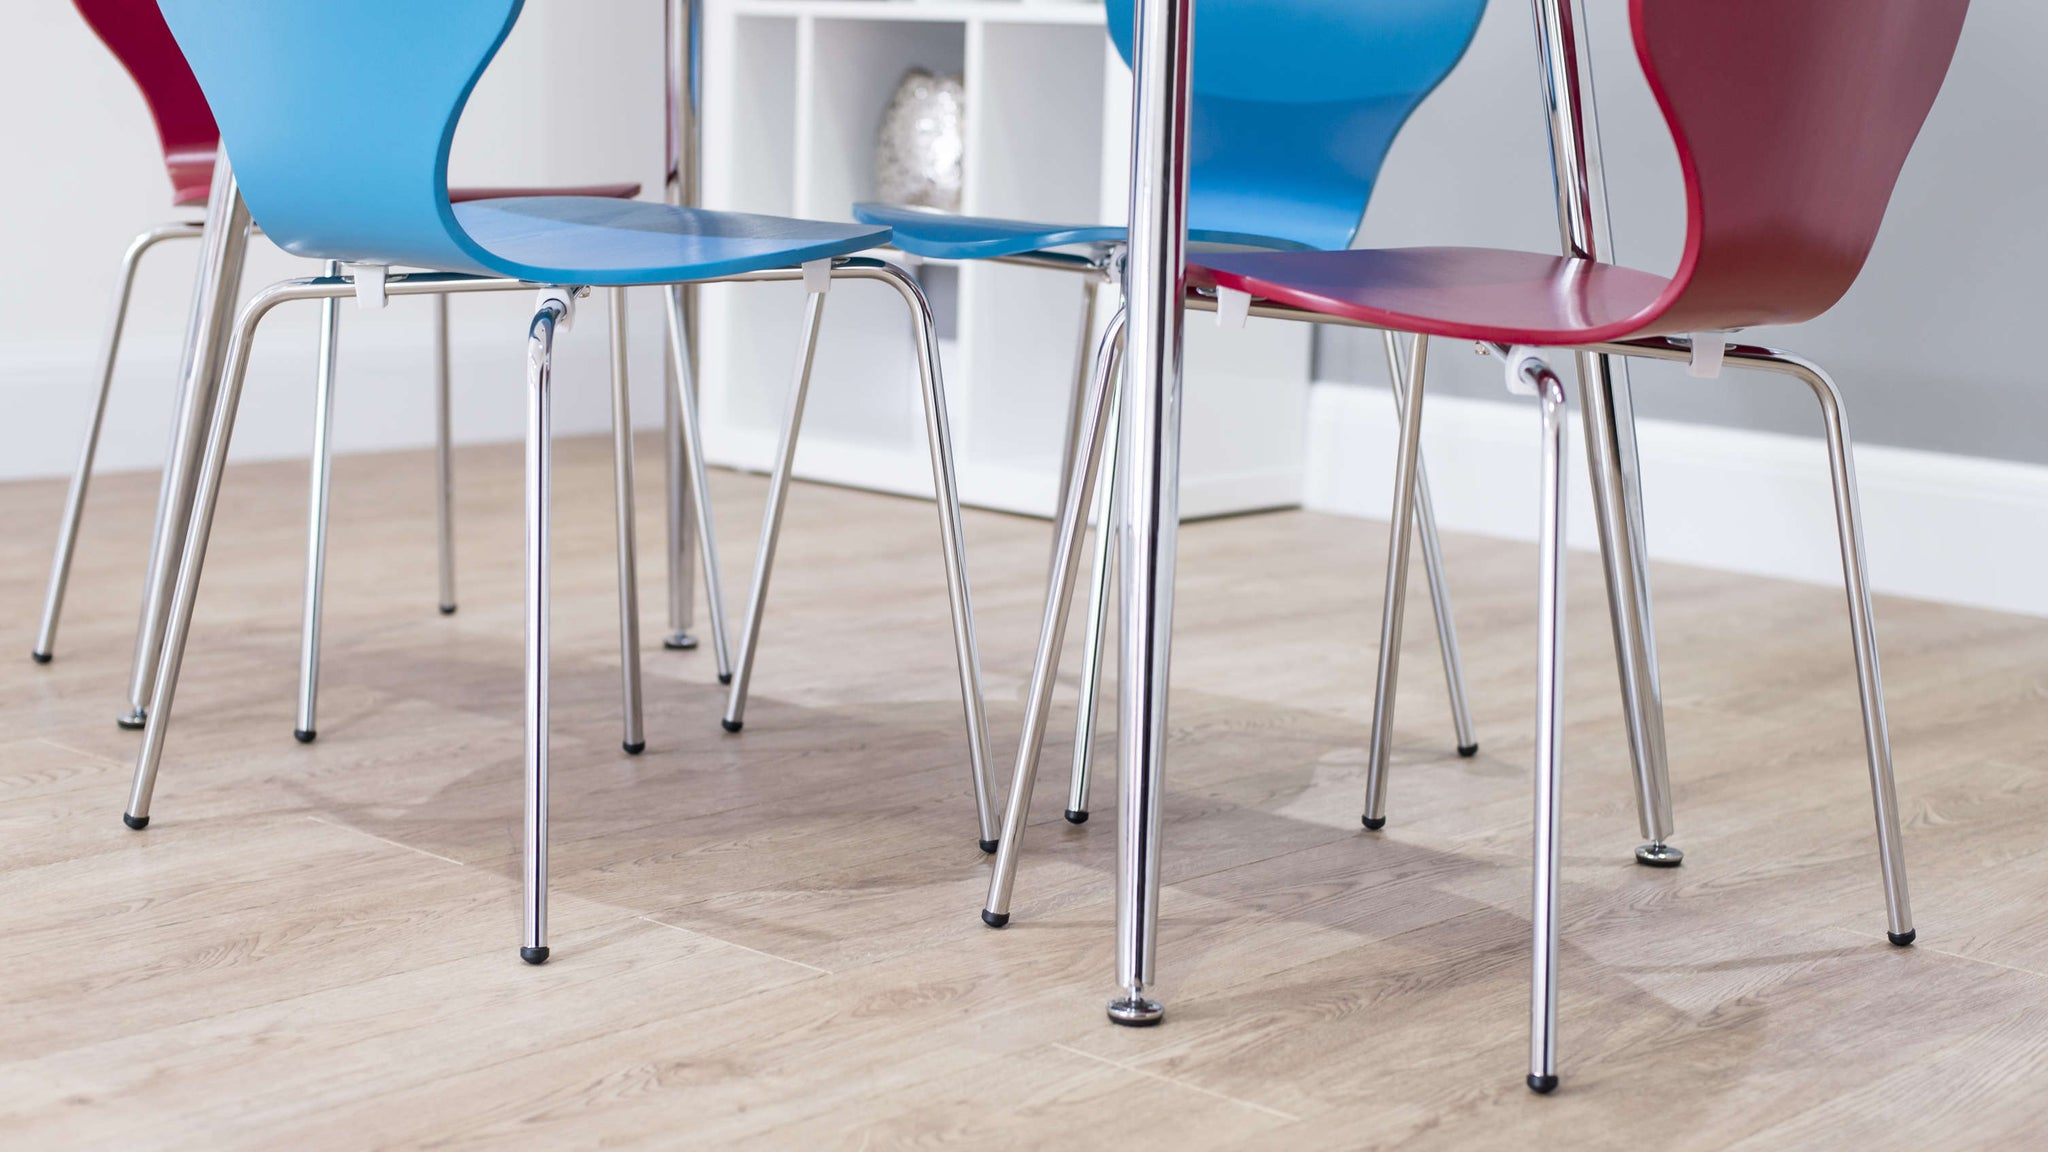 Chrome Based Dining Chairs and Table with Floor Protectors